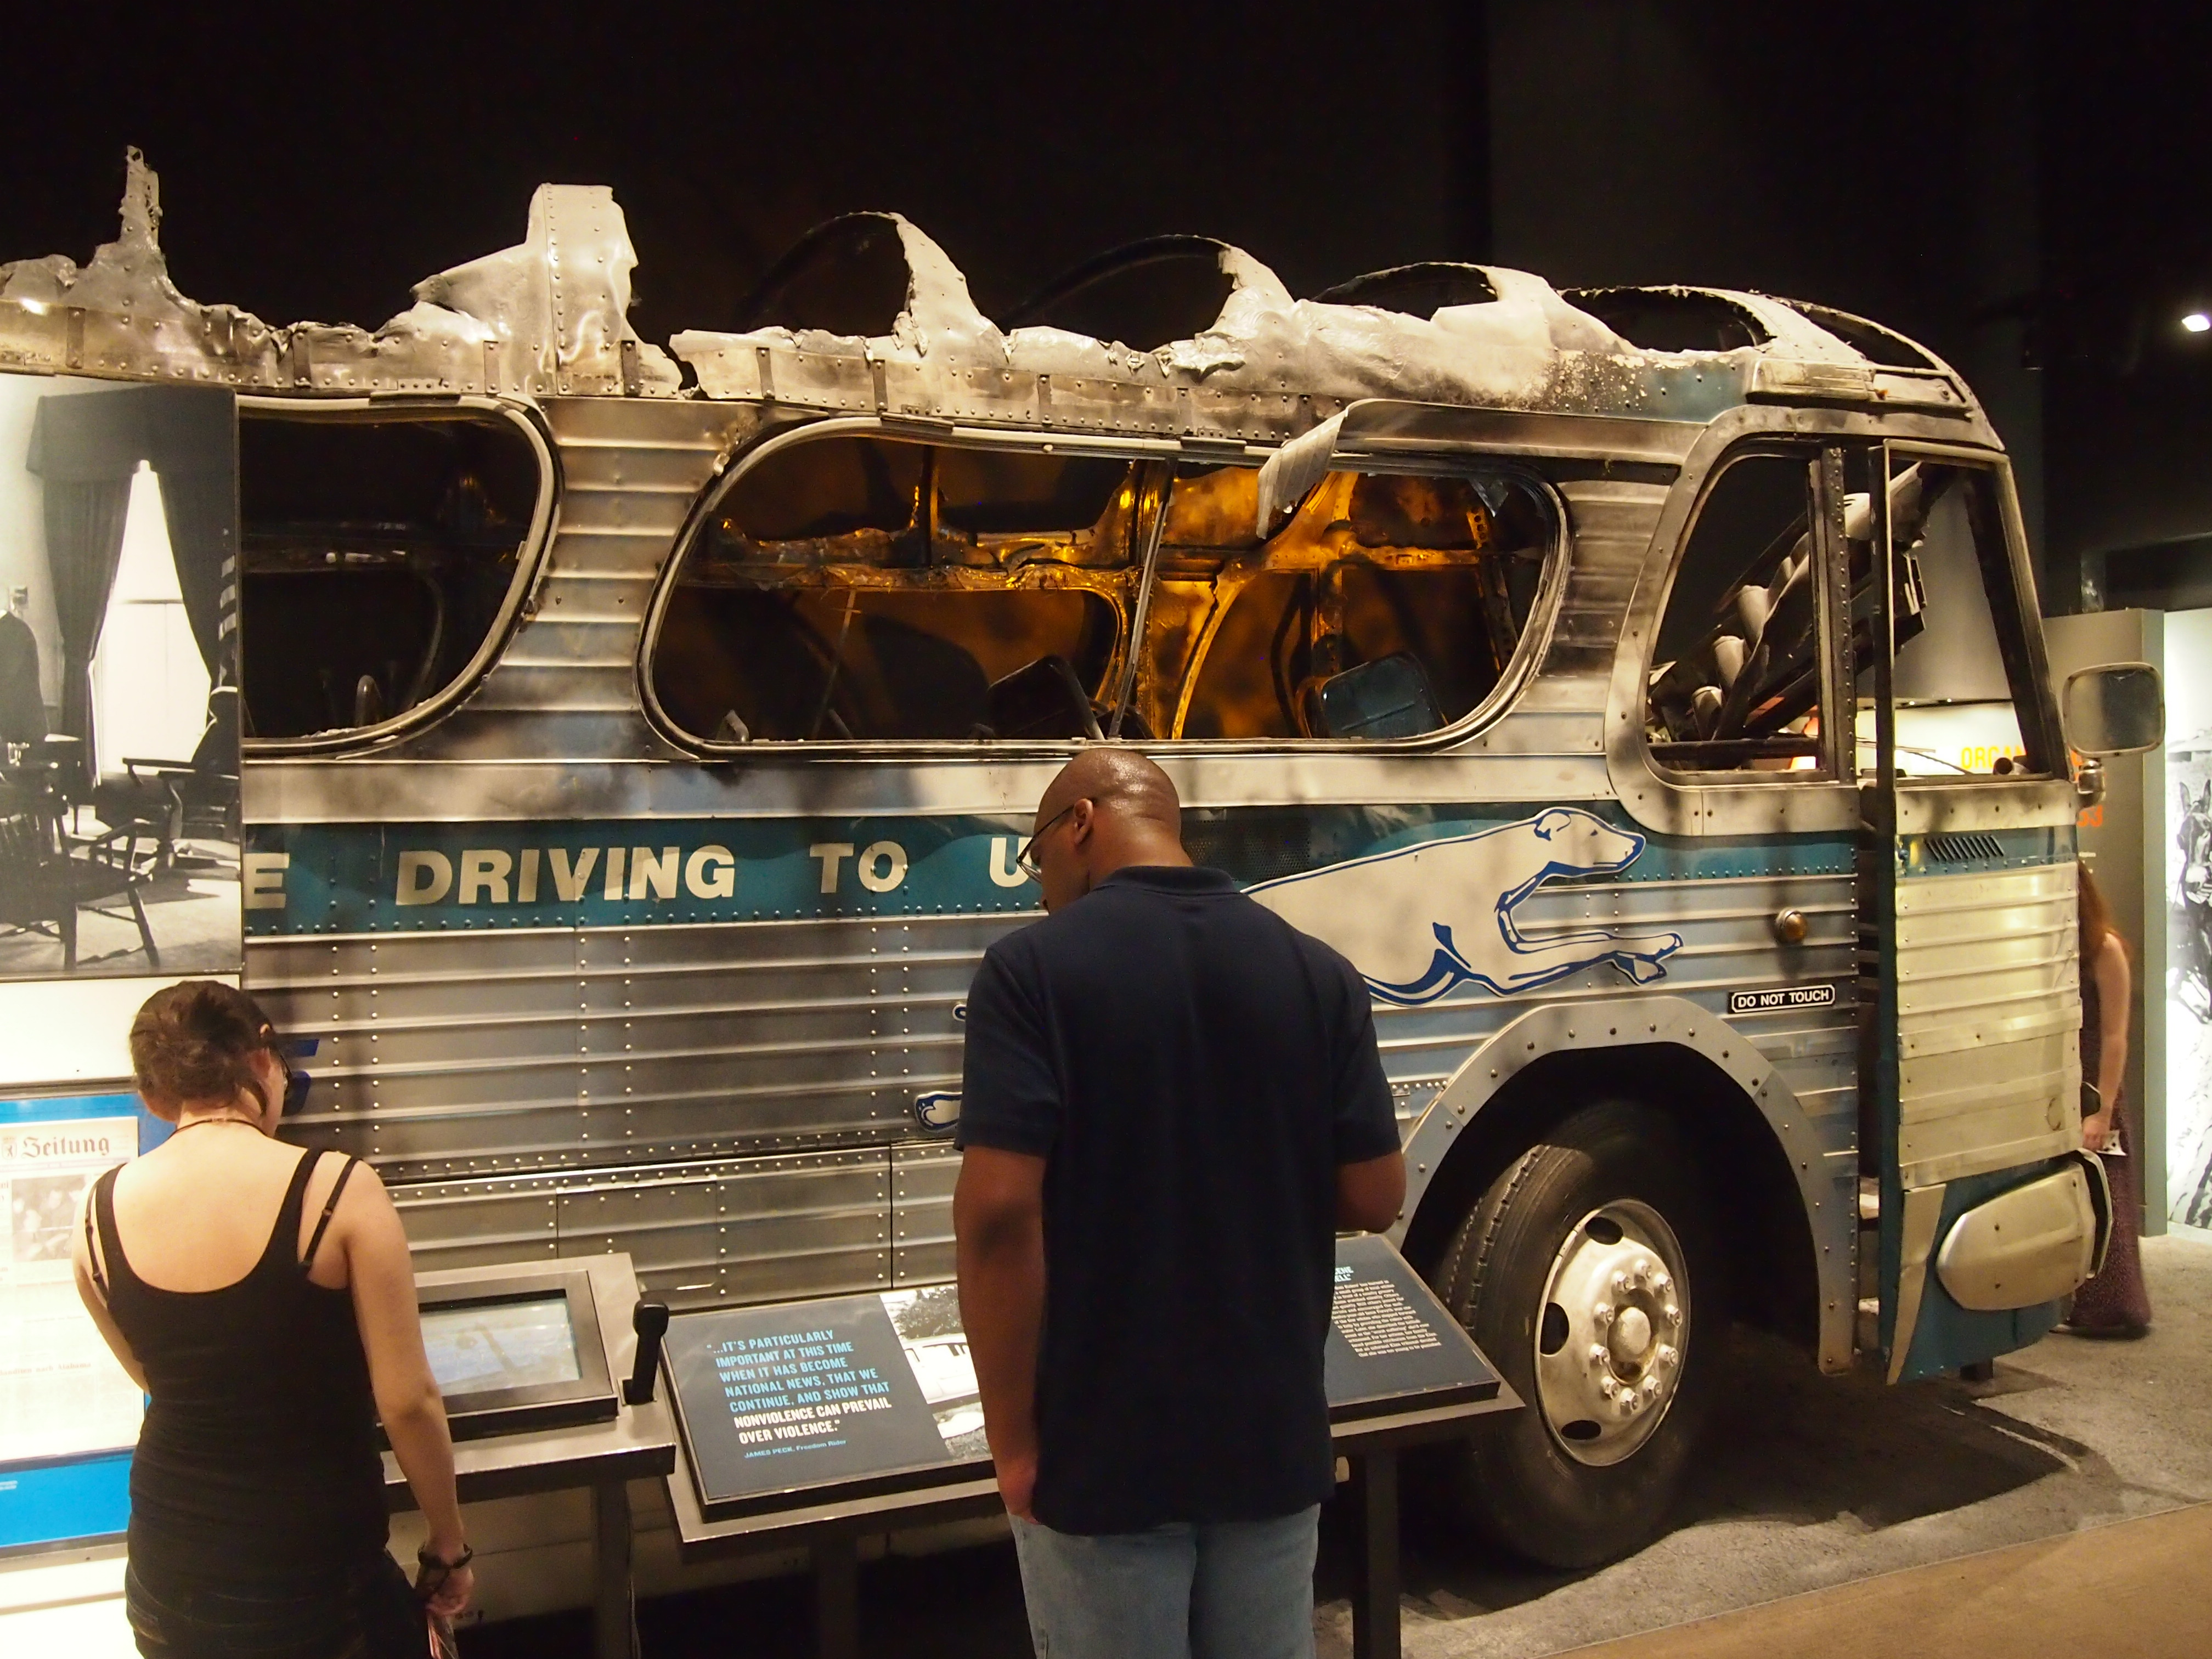 National Civil Rights Museum - Freedom Riders